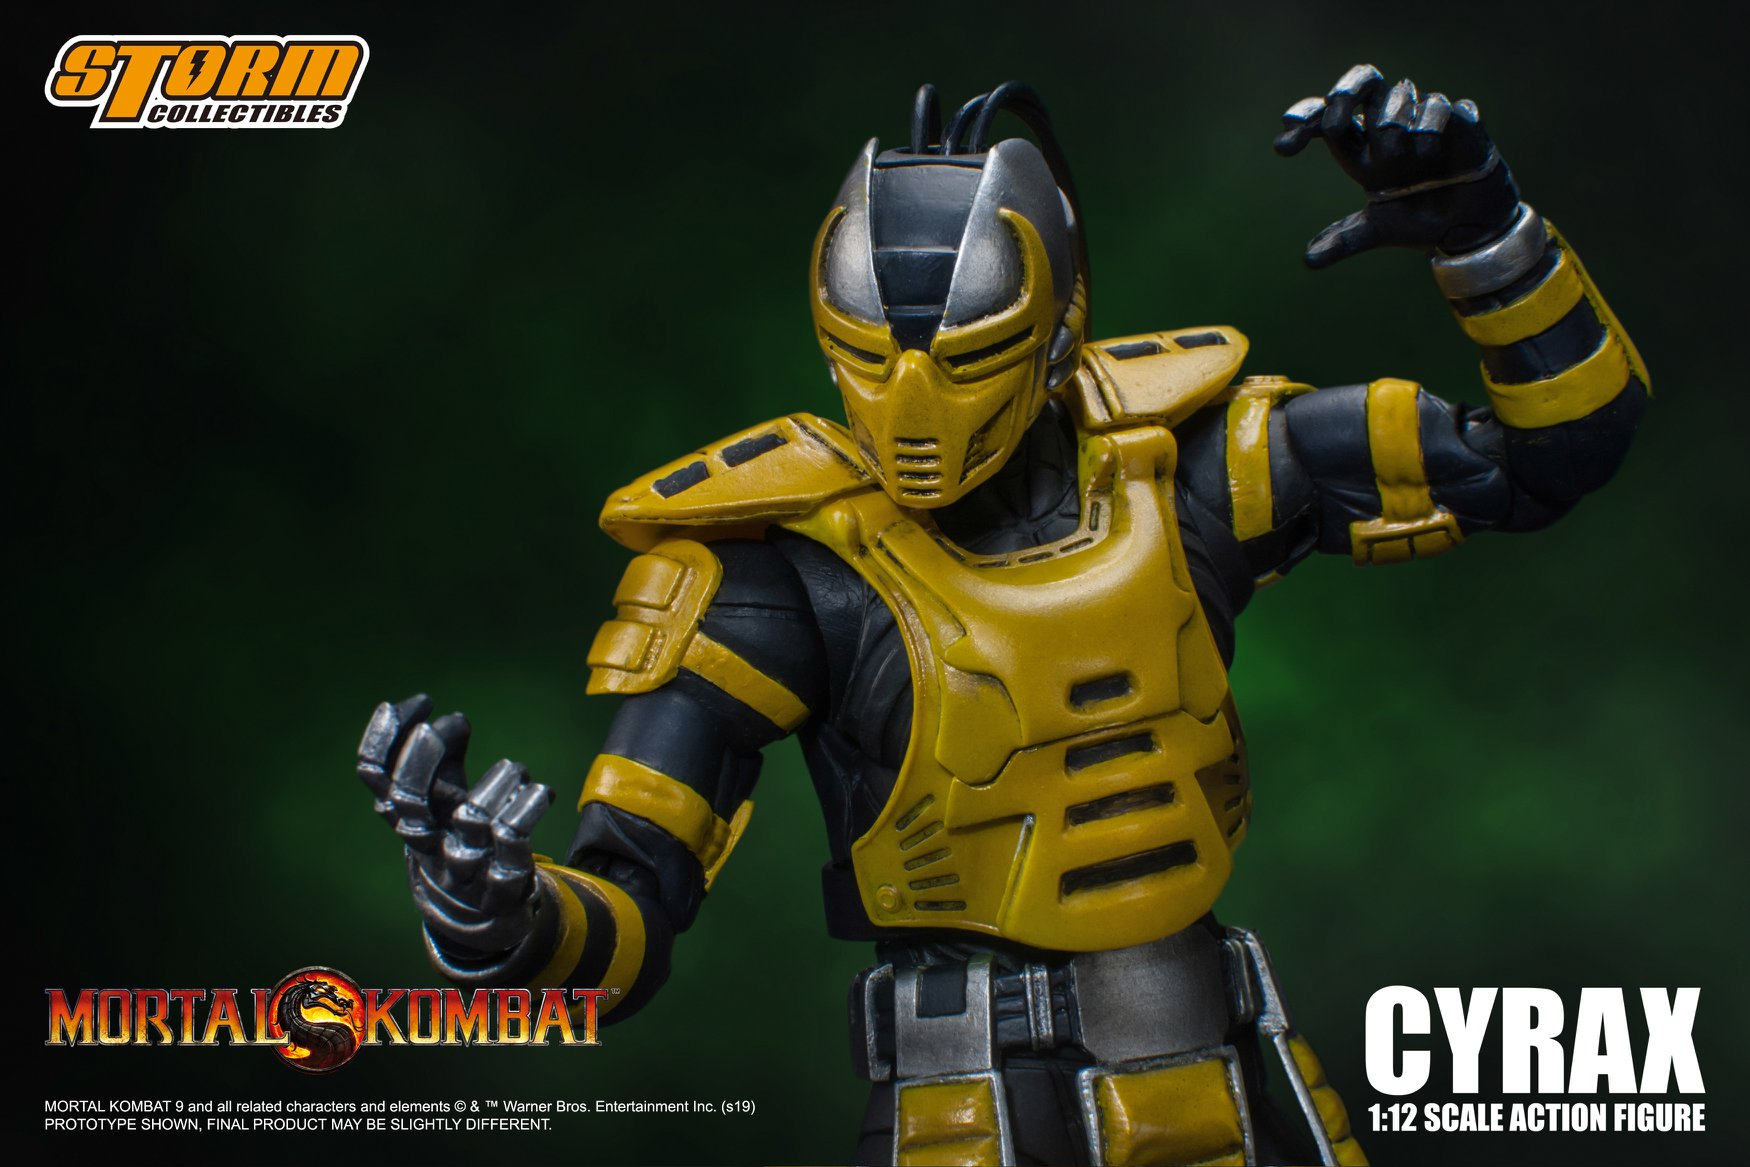 Full Details And Photos For The Mortal Kombat Cyrax Figure By Storm Collectibles The Toyark News Cyrax was one of the new cyborg ninja which were introduced in mortal kombat 3. mortal kombat cyrax figure